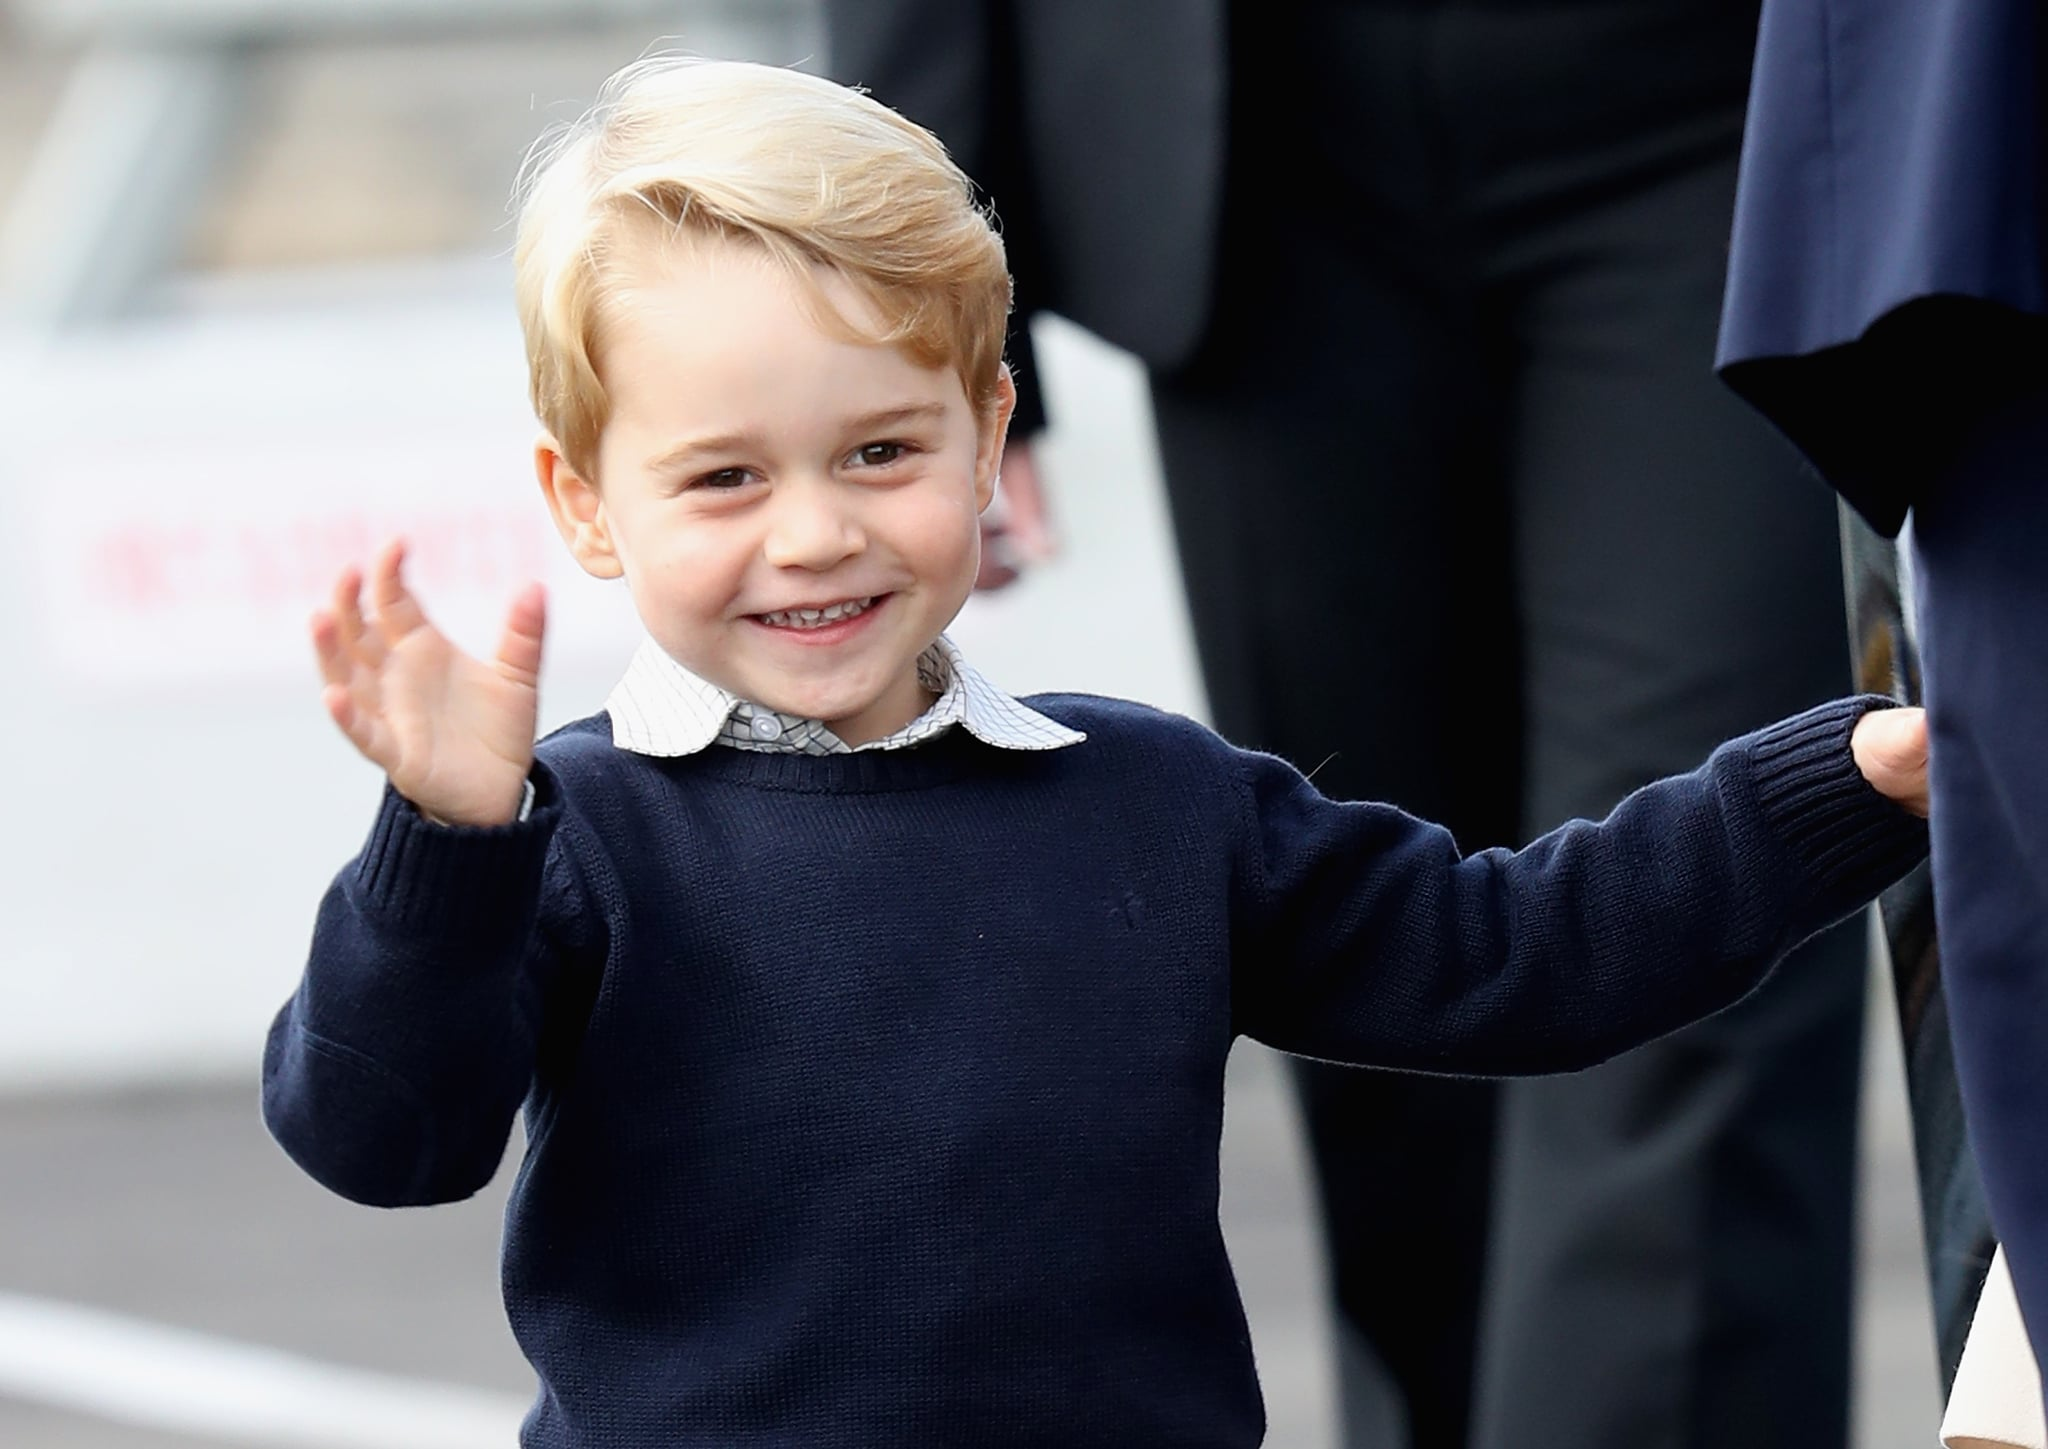 VICTORIA, BC - OCTOBER 01:  Prince George of Cambridge waves as he leaves from Victoria Harbour to board a sea-plane on the final day of their Royal Tour of Canada on October 1, 2016 in Victoria, Canada. The Royal couple along with their Children Prince George of Cambridge and Princess Charlotte are visiting Canada as part of an eight day visit to the country taking in areas such as Bella Bella, Whitehorse and Kelowna  (Photo by Chris Jackson/Getty Images)